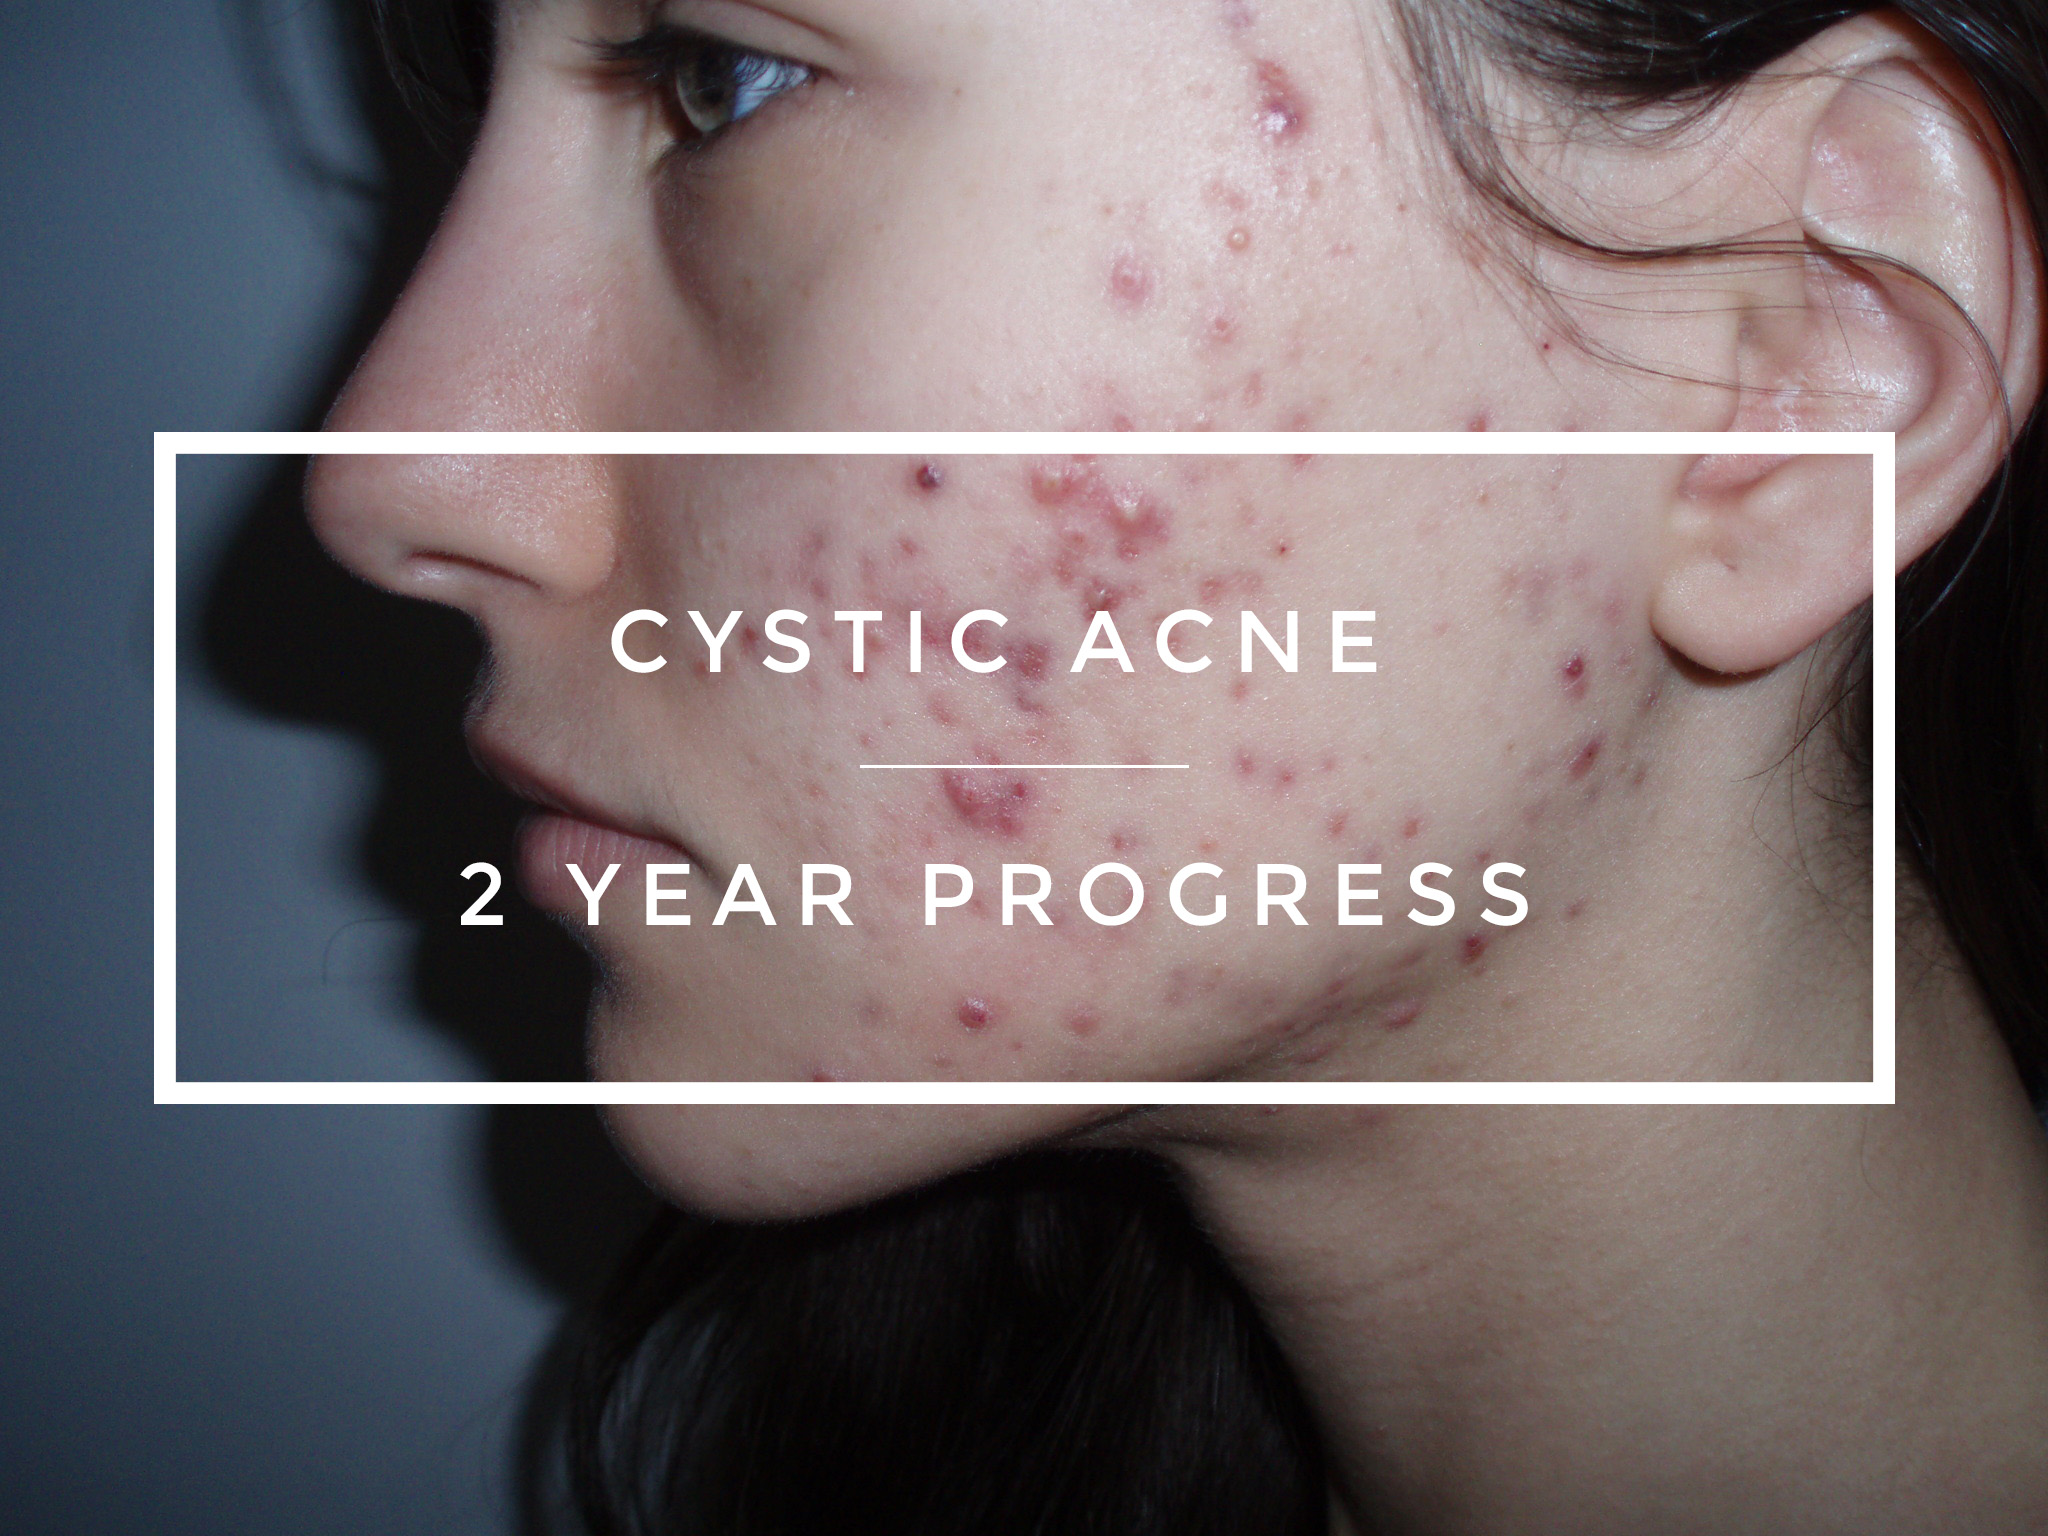 How I Cured My Cystic Acne Update: 1 Year After Probiotics